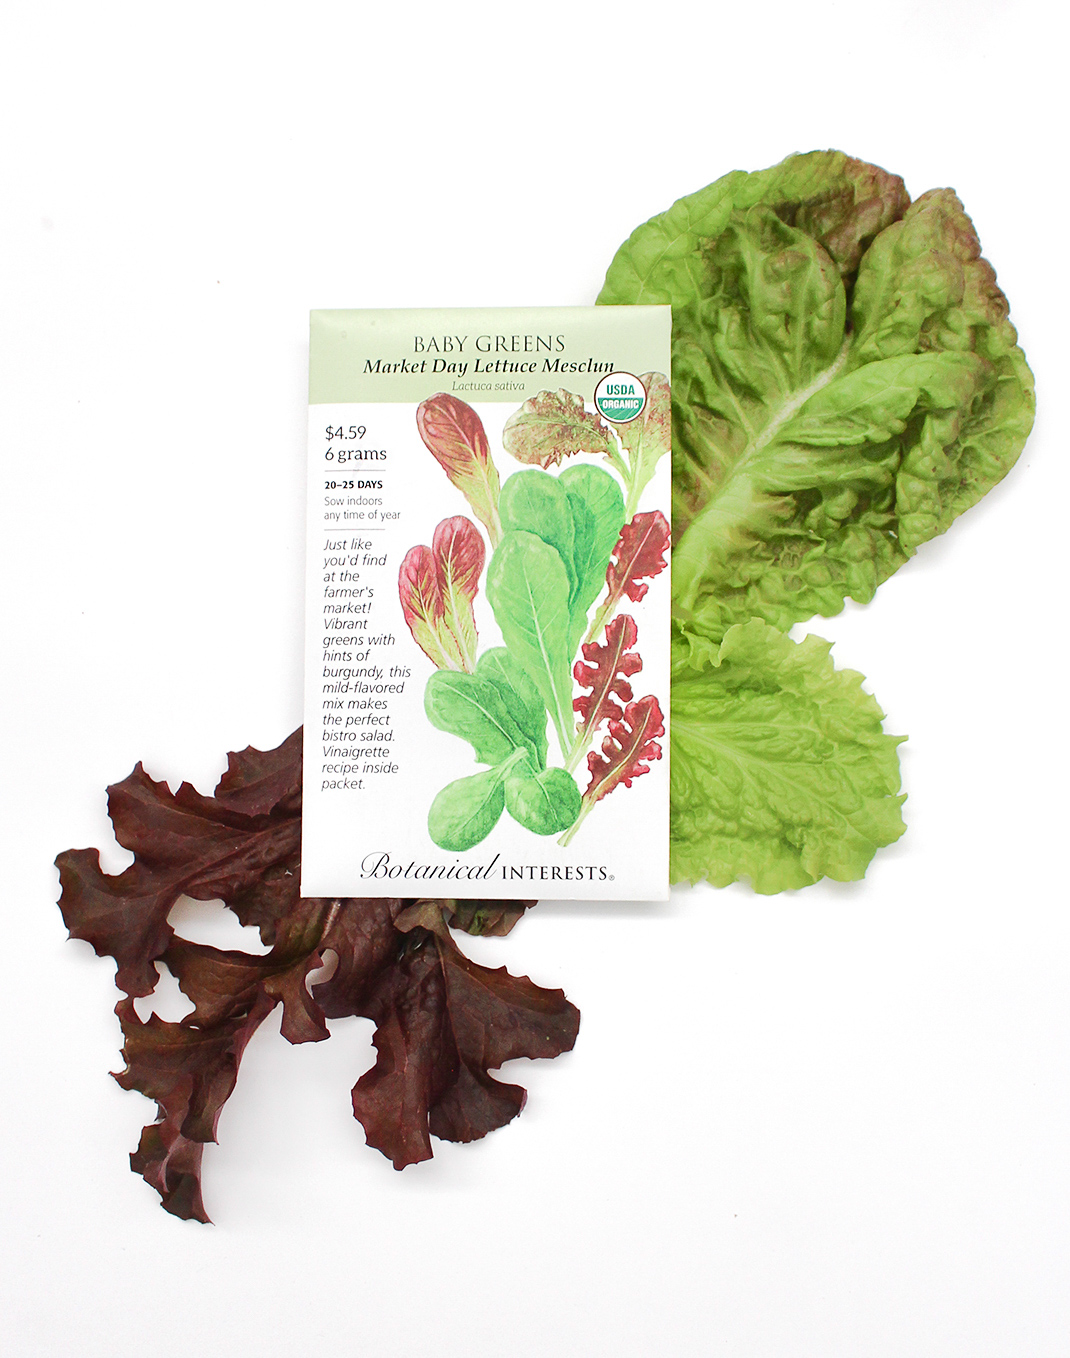 Botanical Interests® 'Market Day' Baby Greens Mesclun Seeds